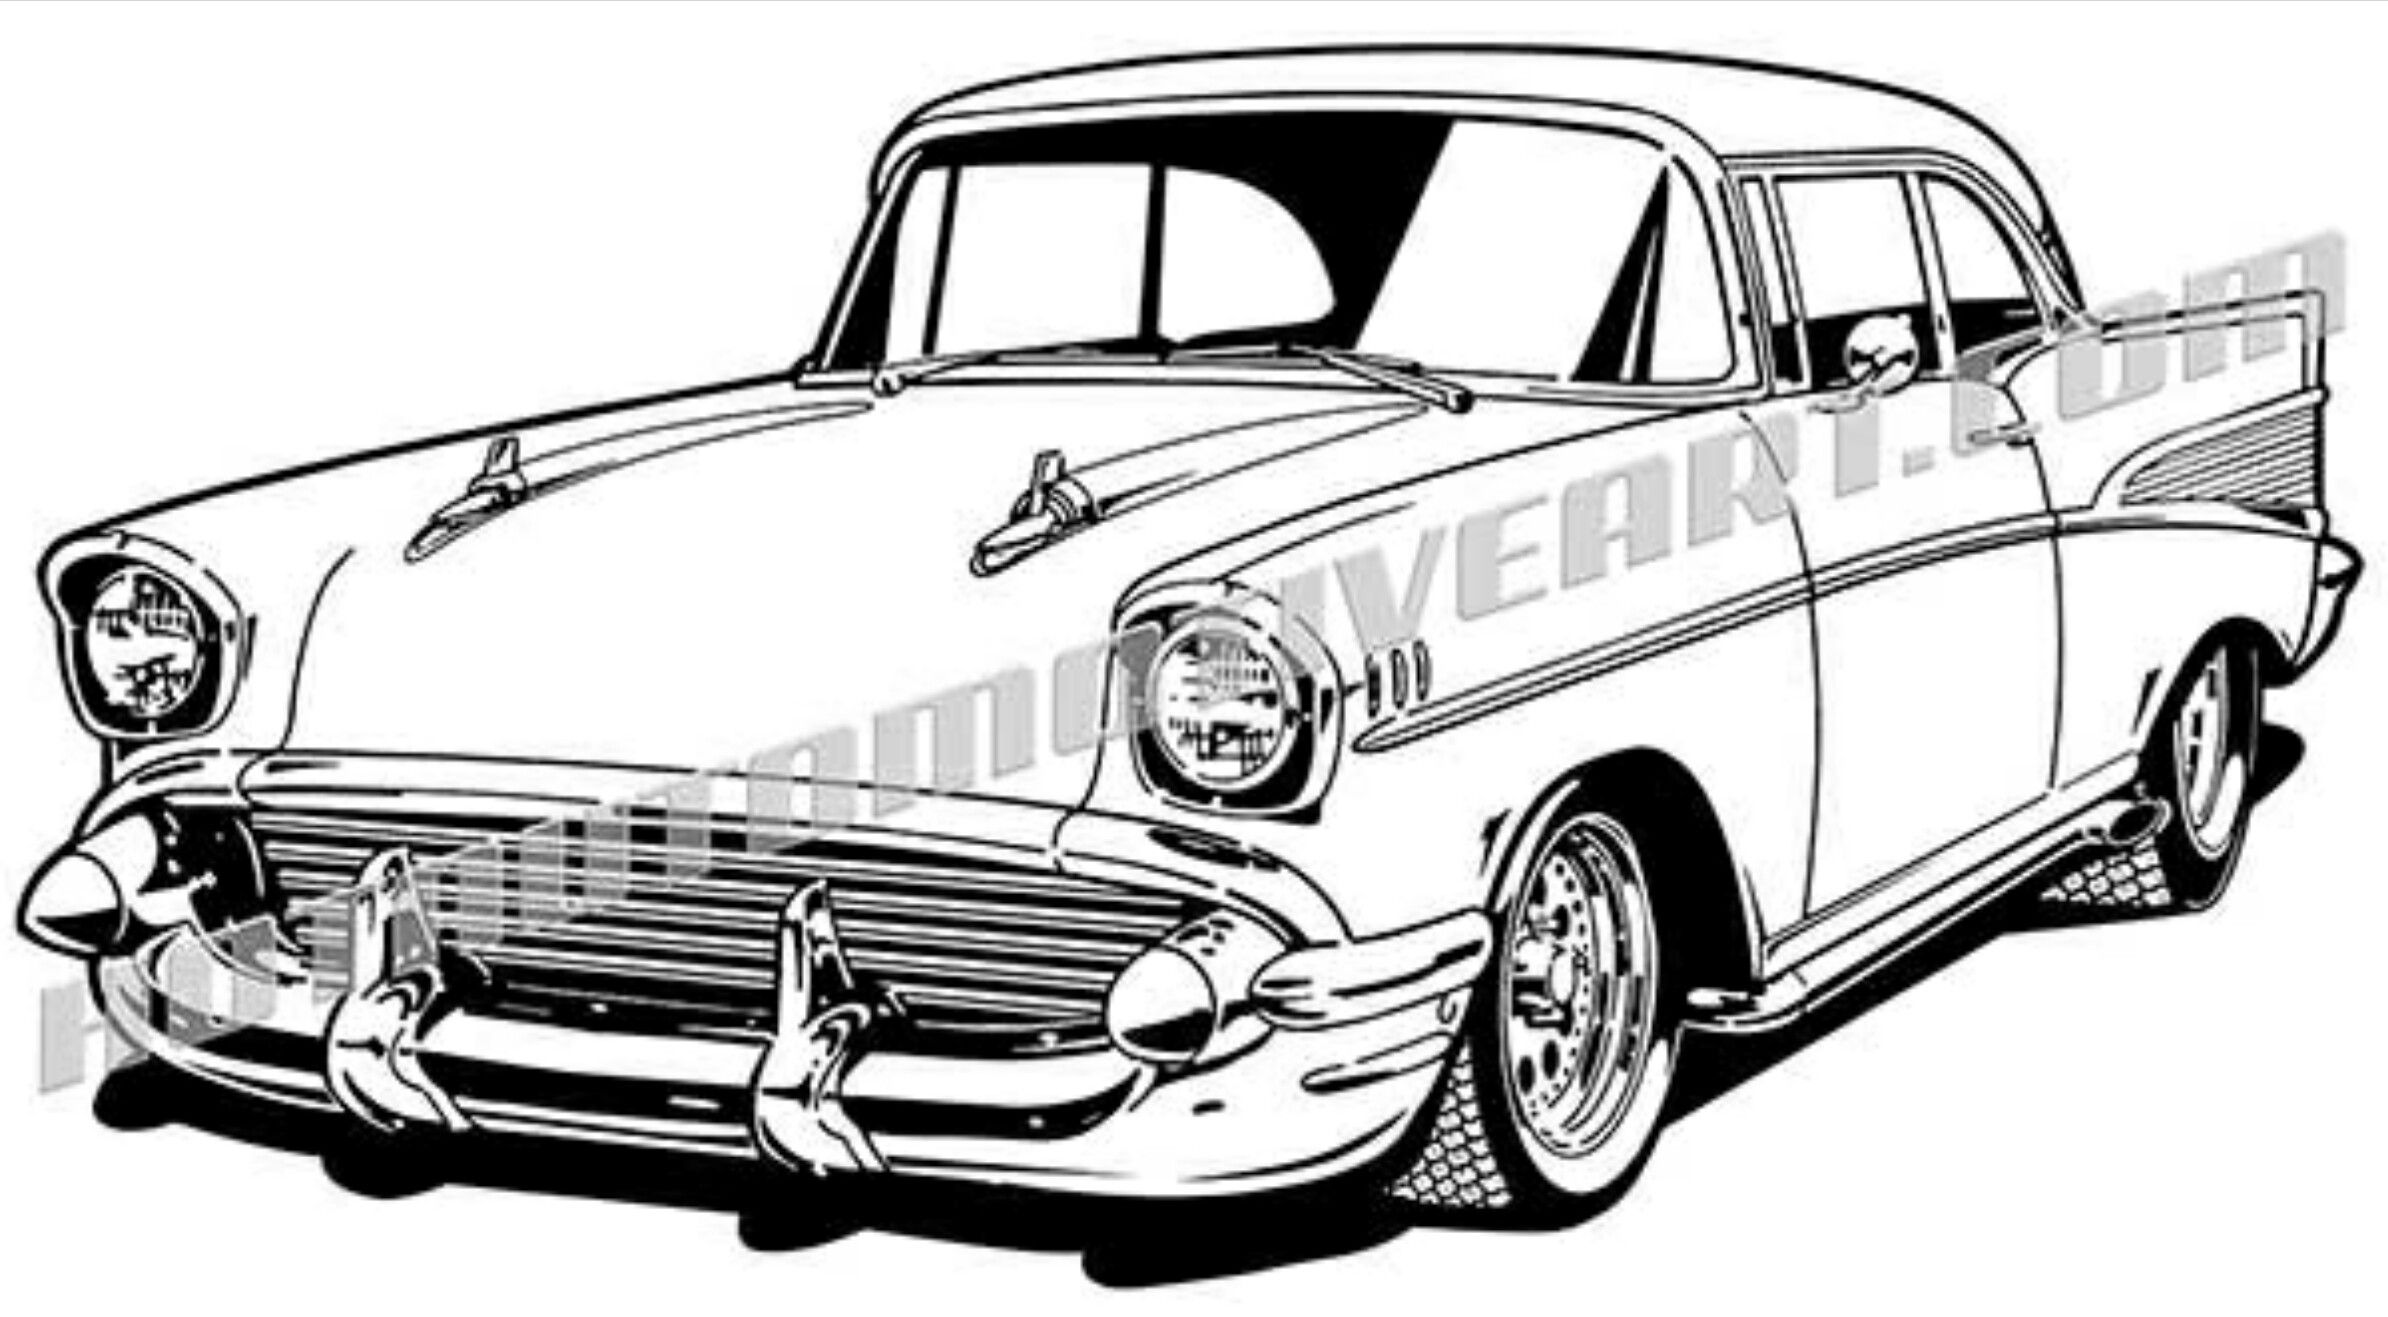 1955 chevy bel air 4 door svg